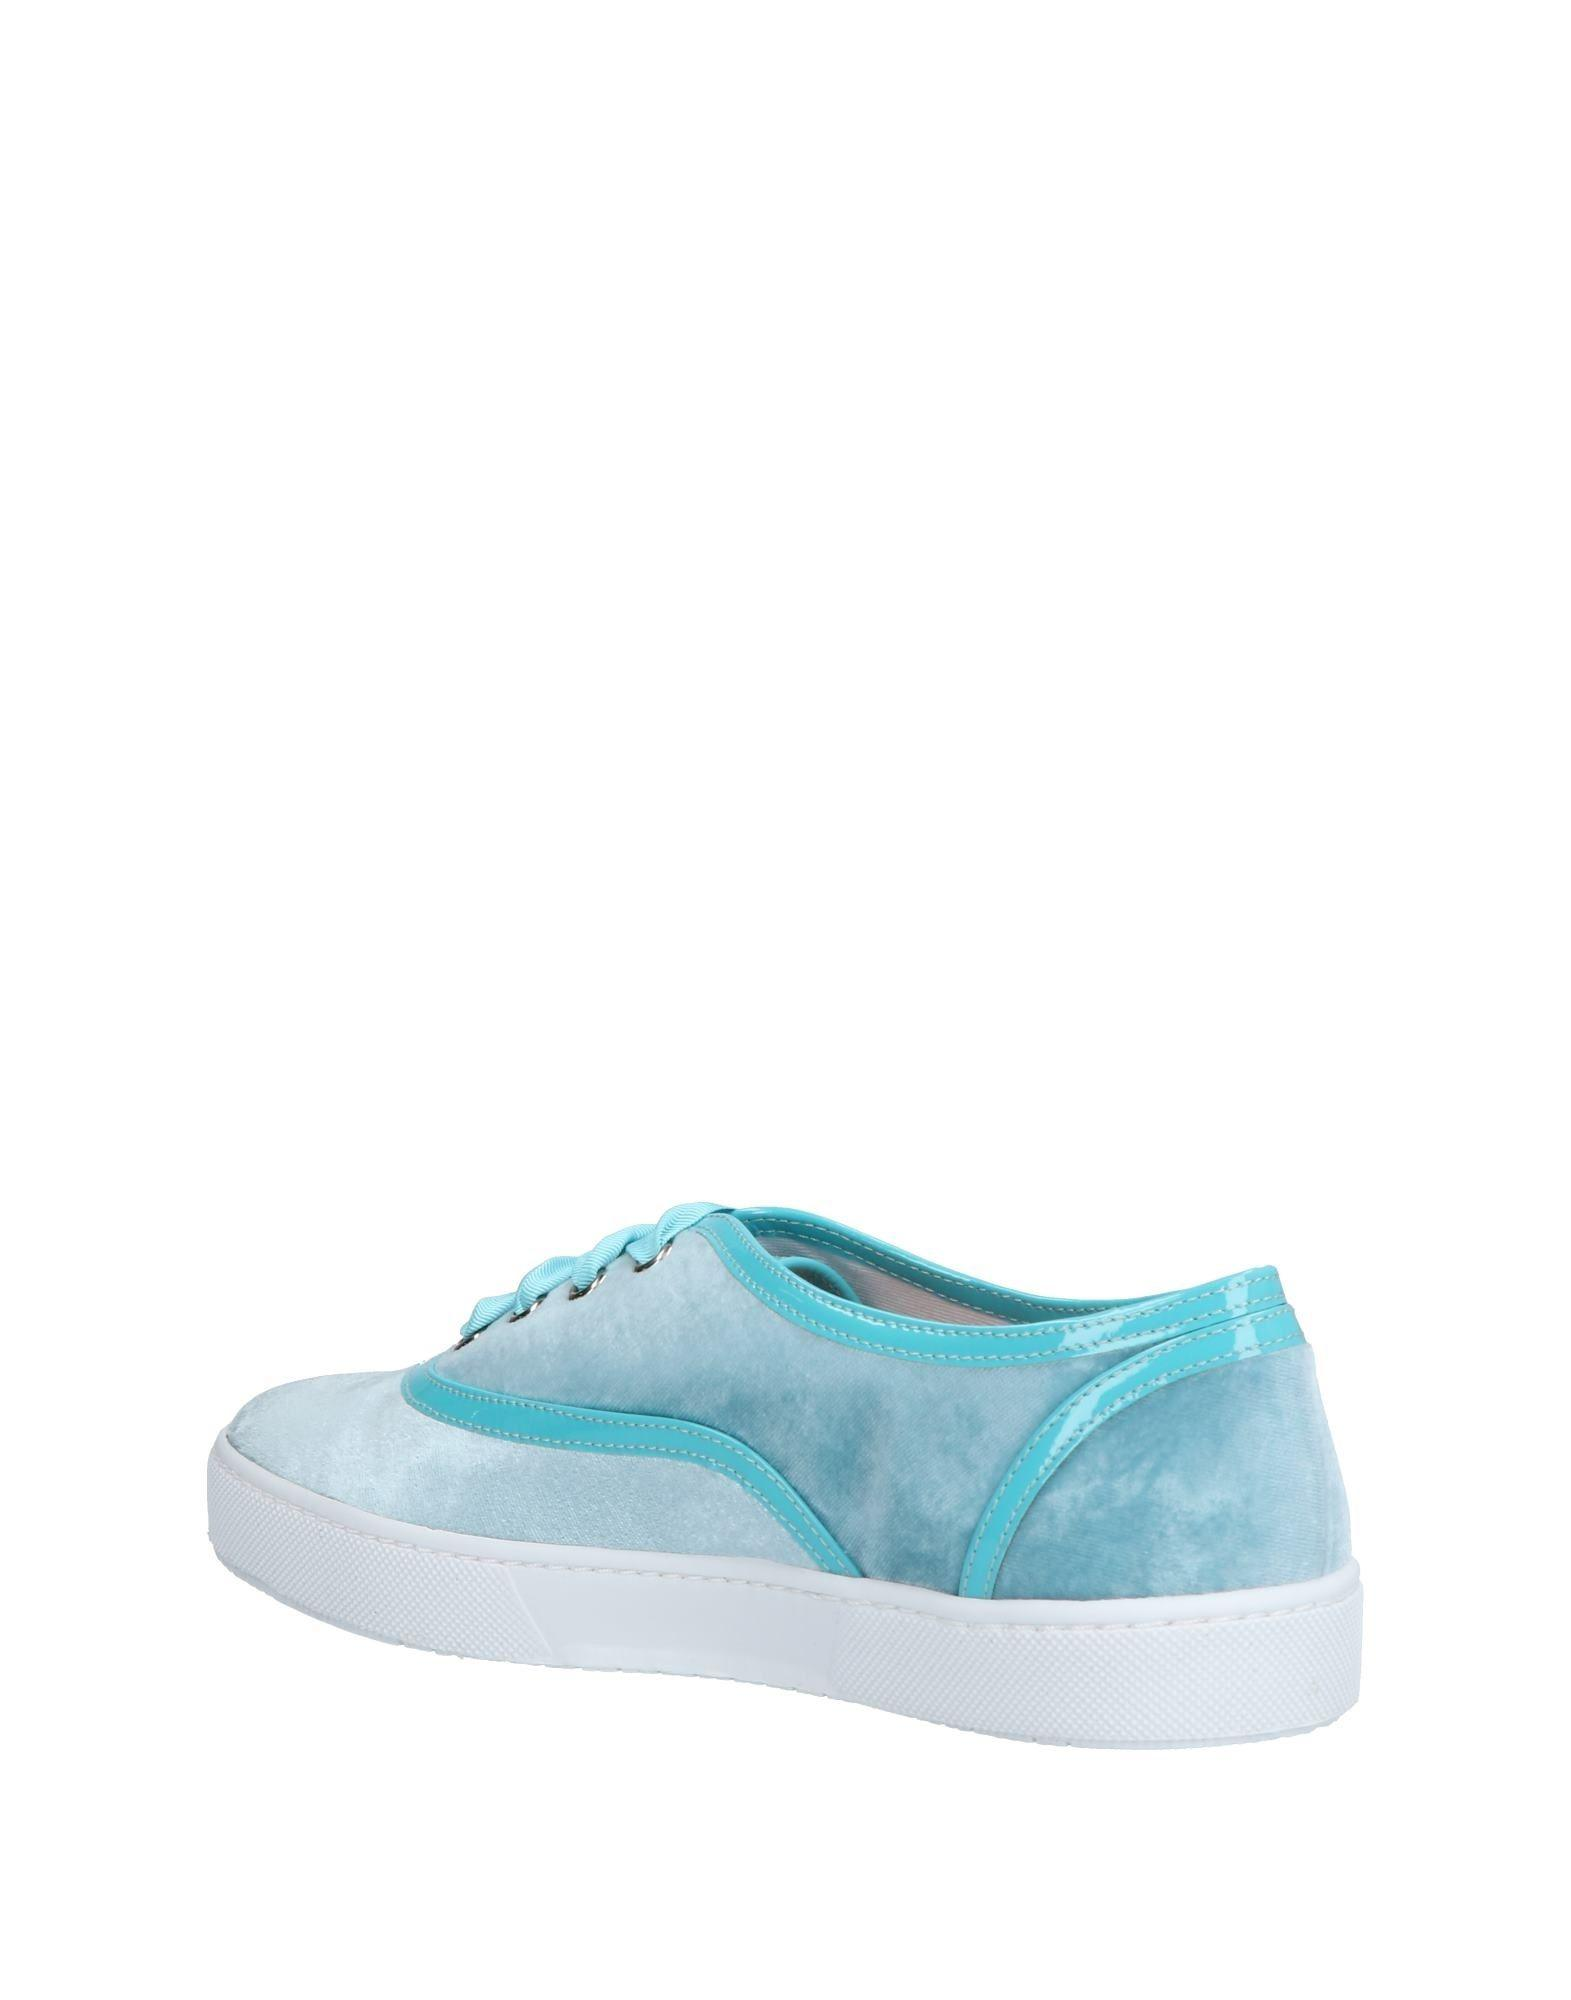 Boutique Moschino Velvet Low-tops & Sneakers in Turquoise (Blue)